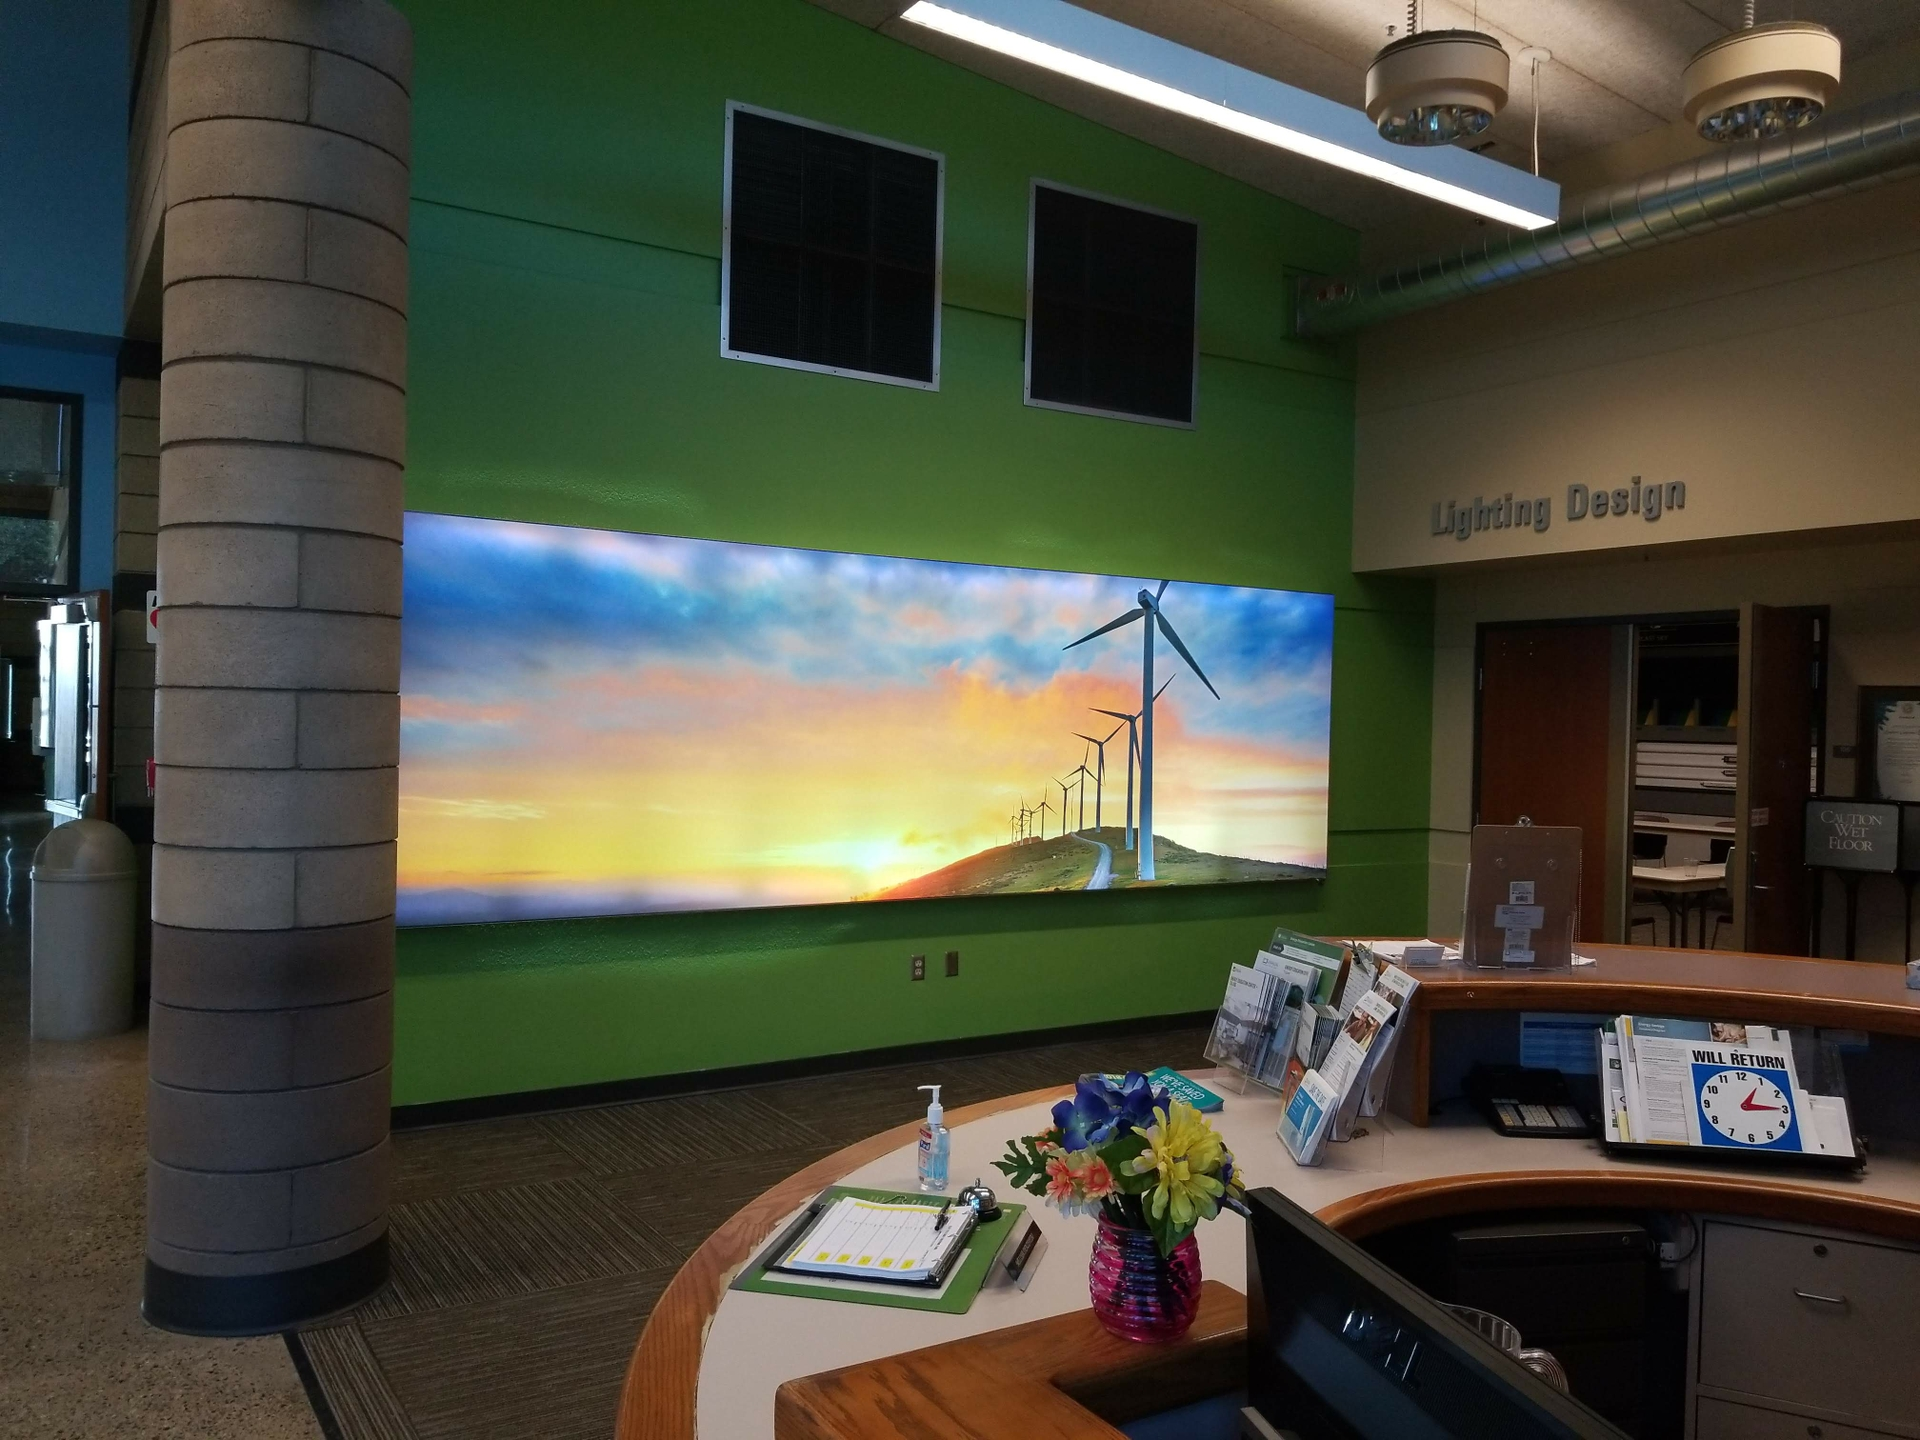 Business customers can learn more about energy-efficient technology and how to reduce energy bils at the utility's Energy Education Centers.